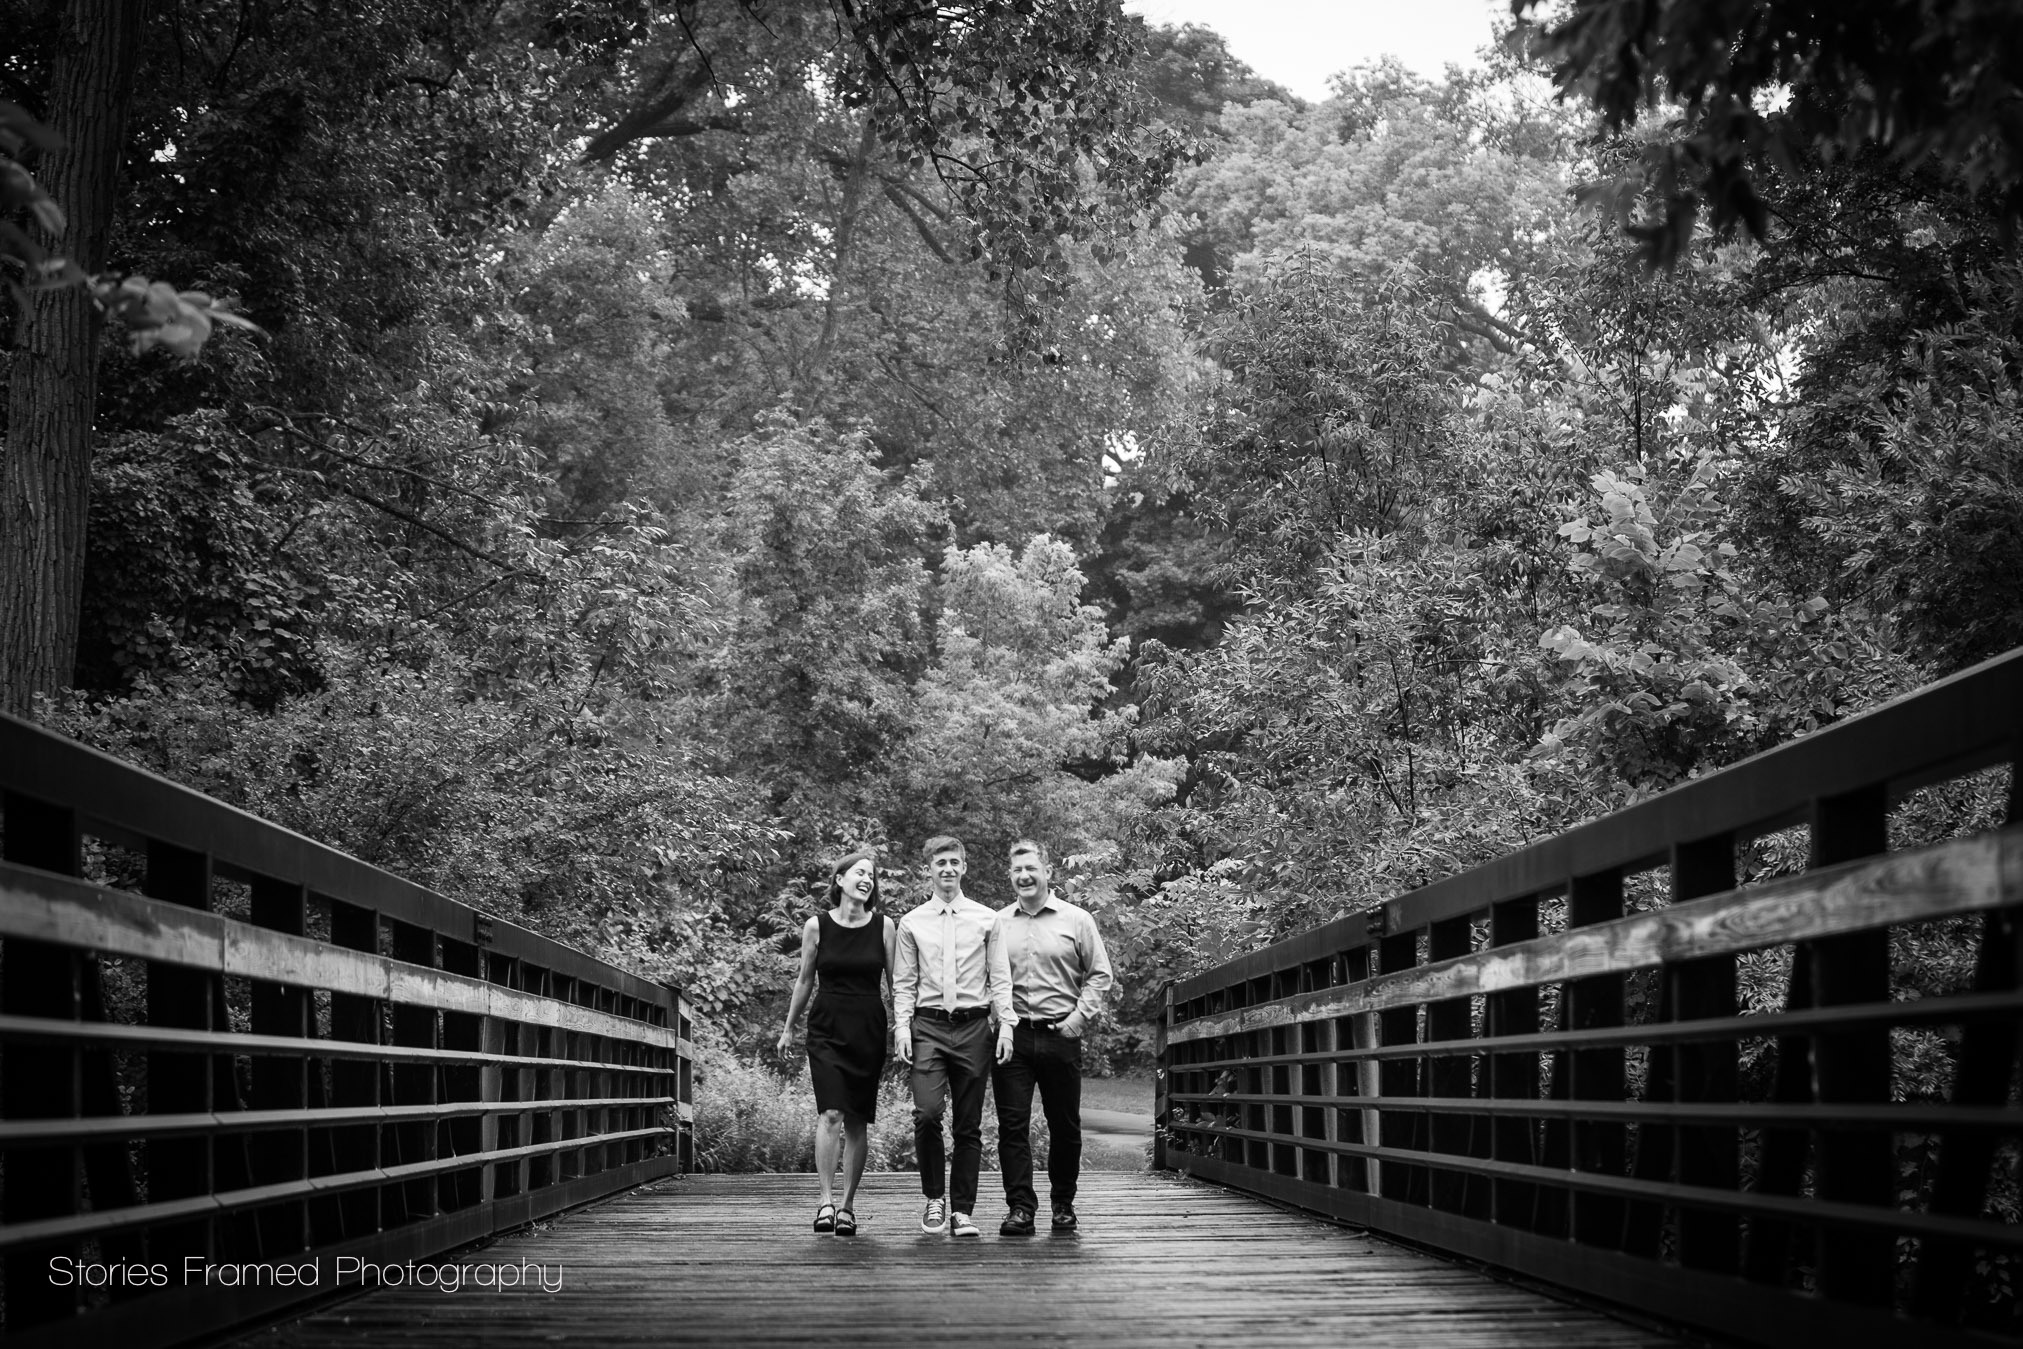 Family walking across a bridge in Wauwatosa